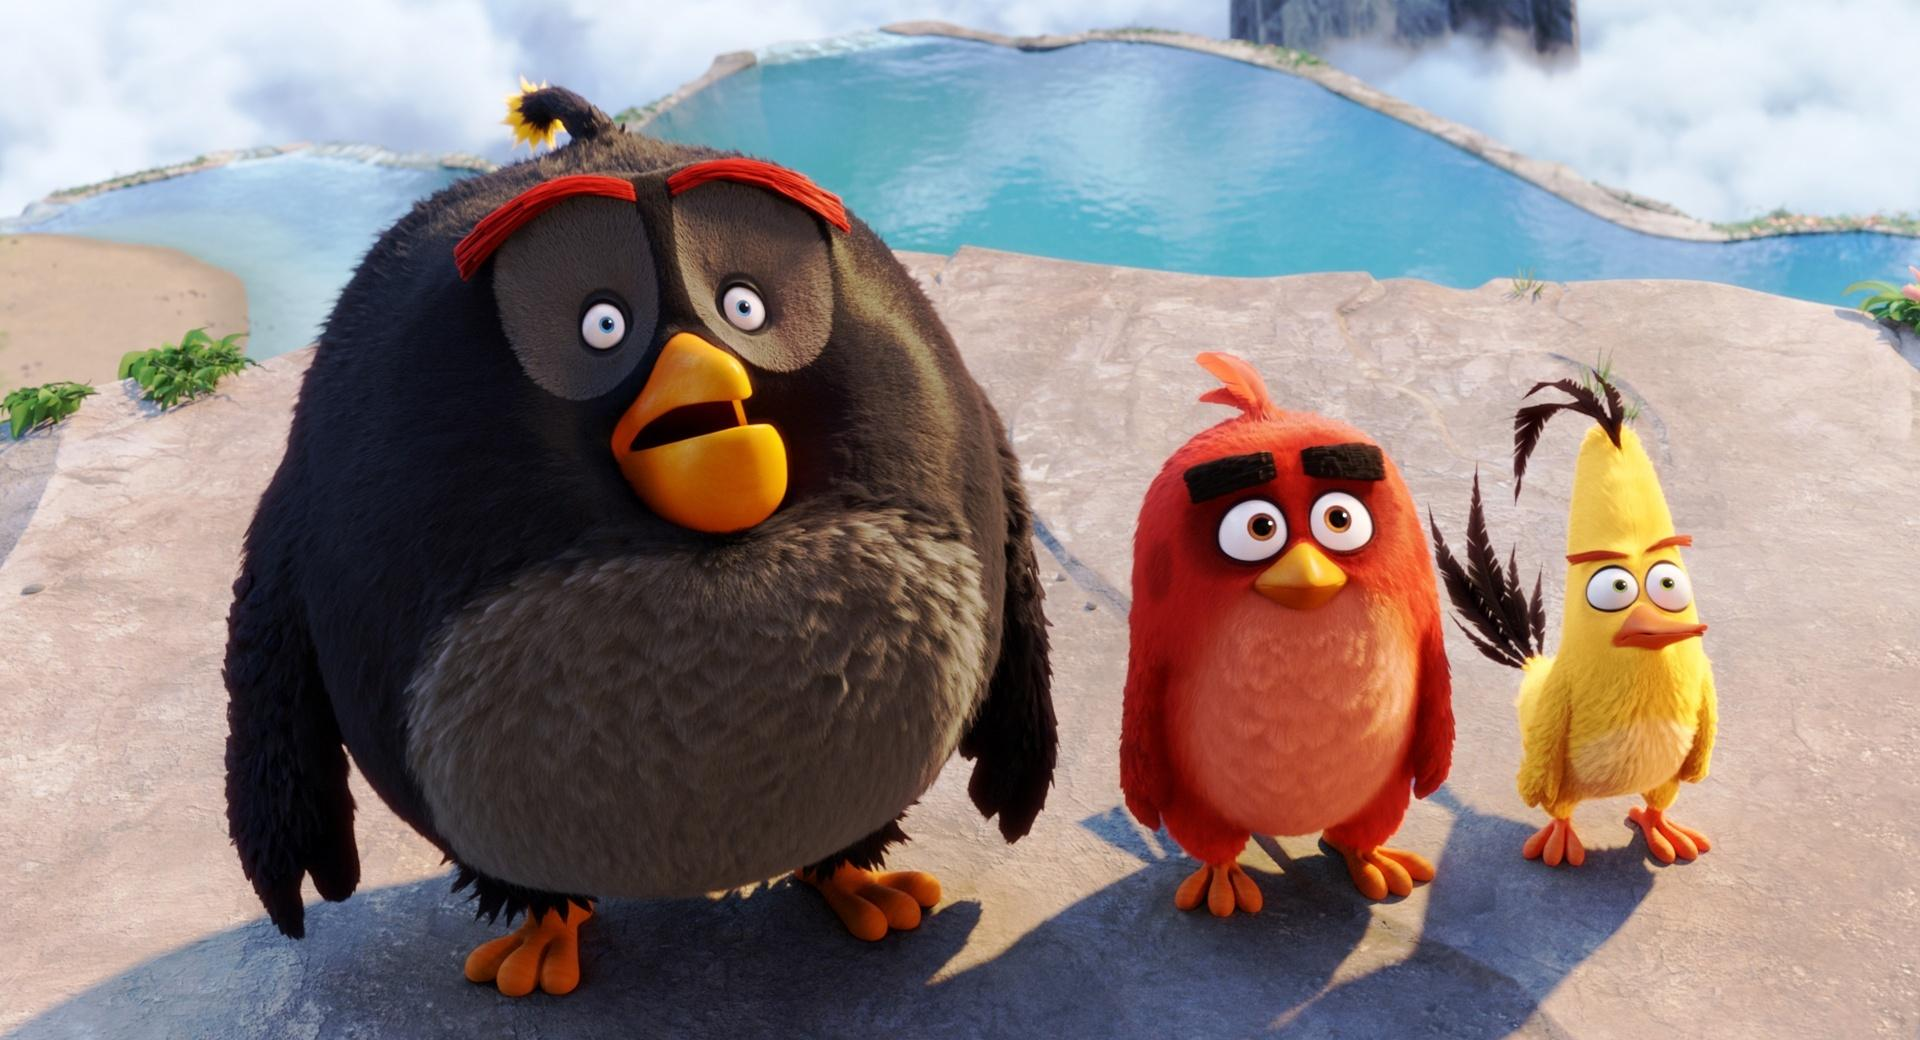 Bomb, Red, Chuck - Angry Birds wallpapers HD quality